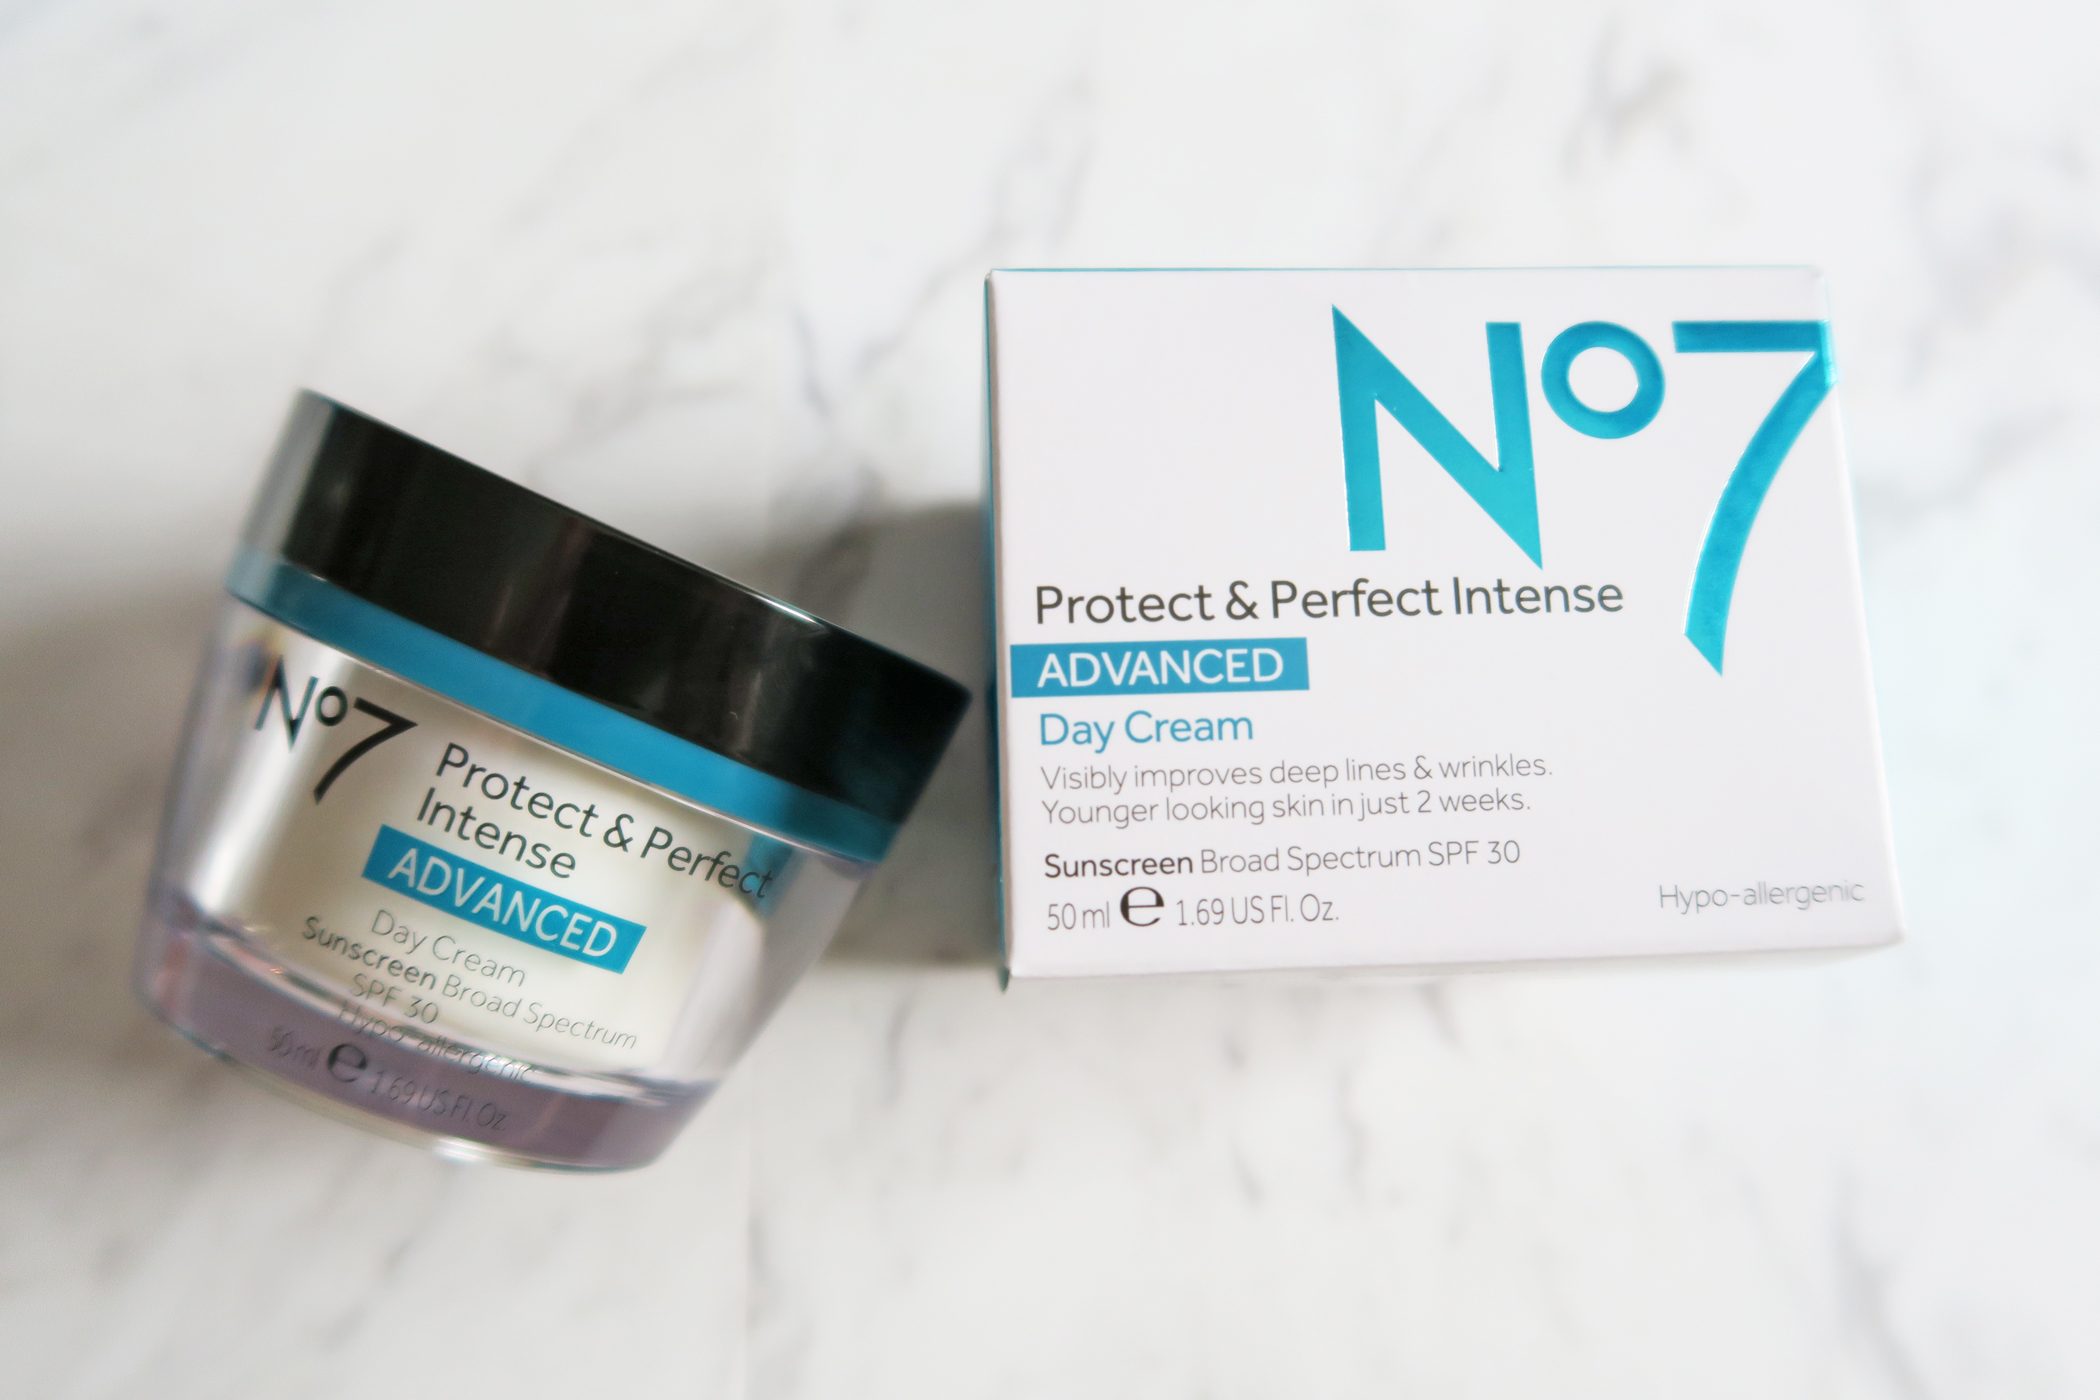 No 7 sun protection review